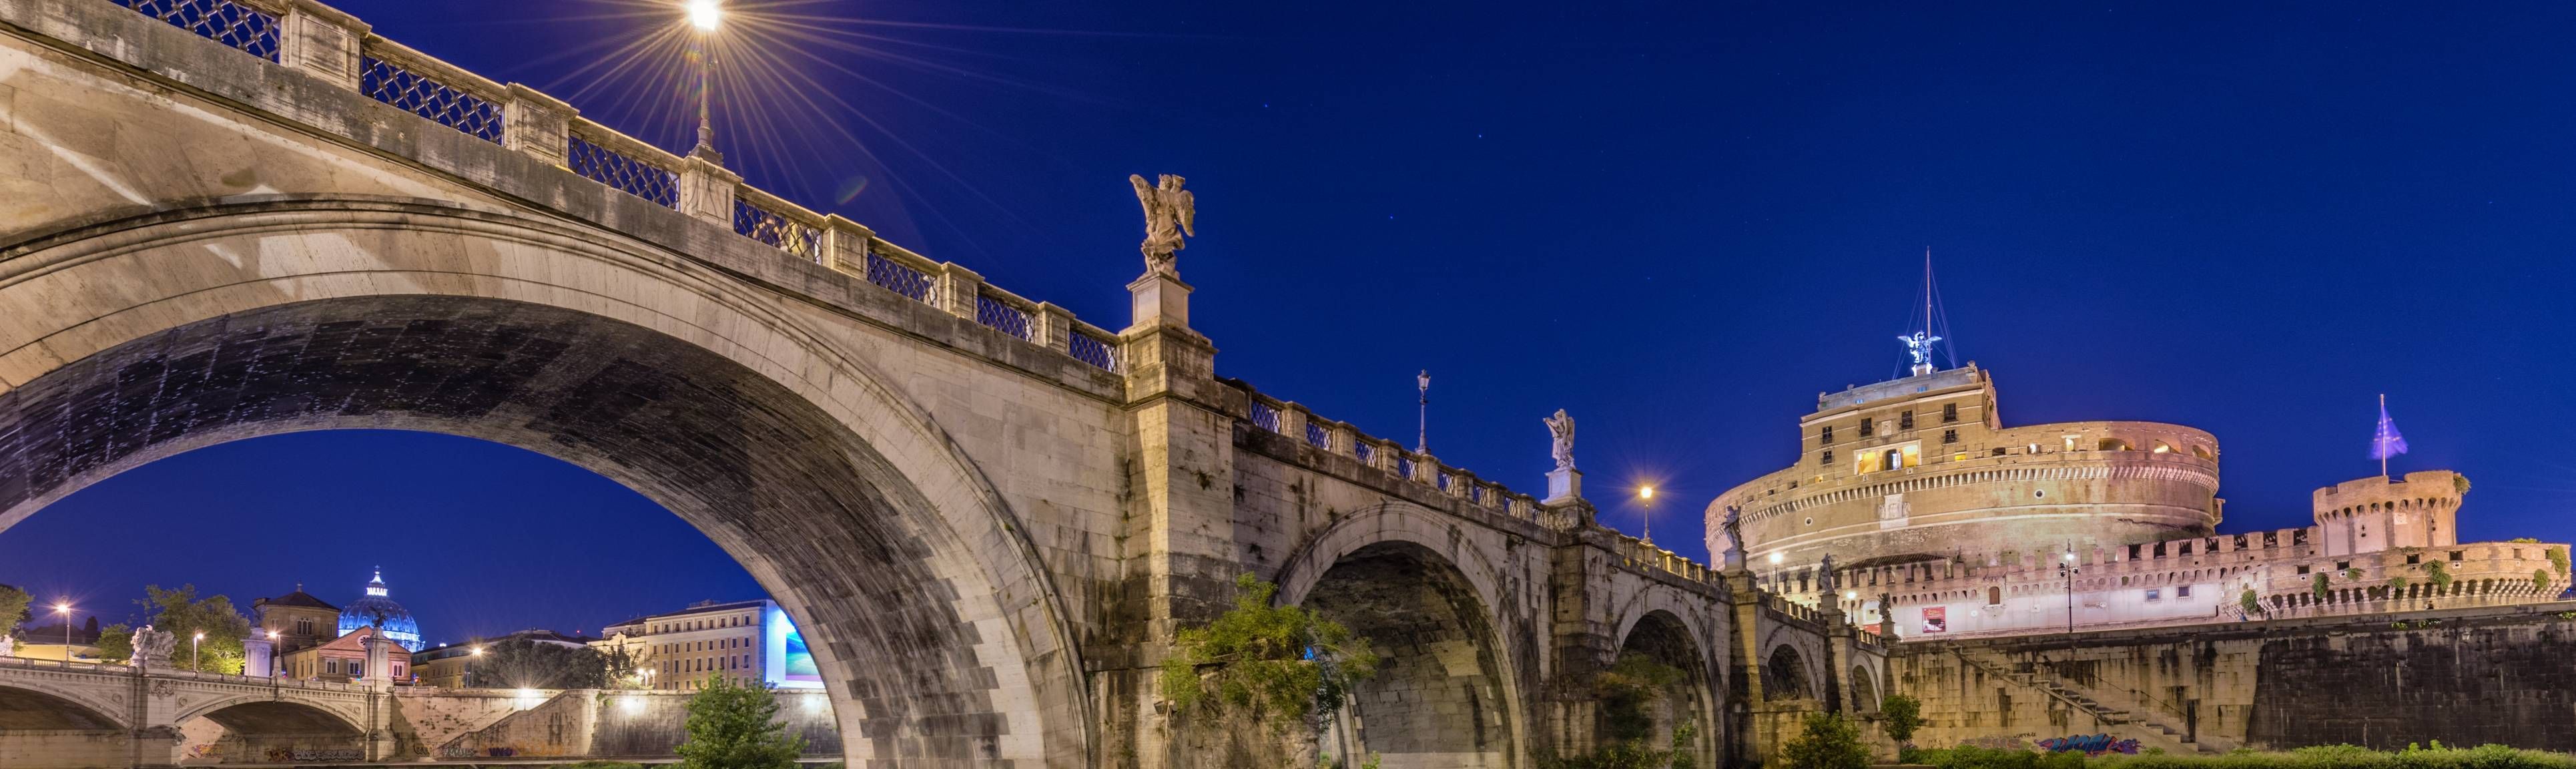 Evening view of Angel Bridge and Castel Sant'Angelo in Rome